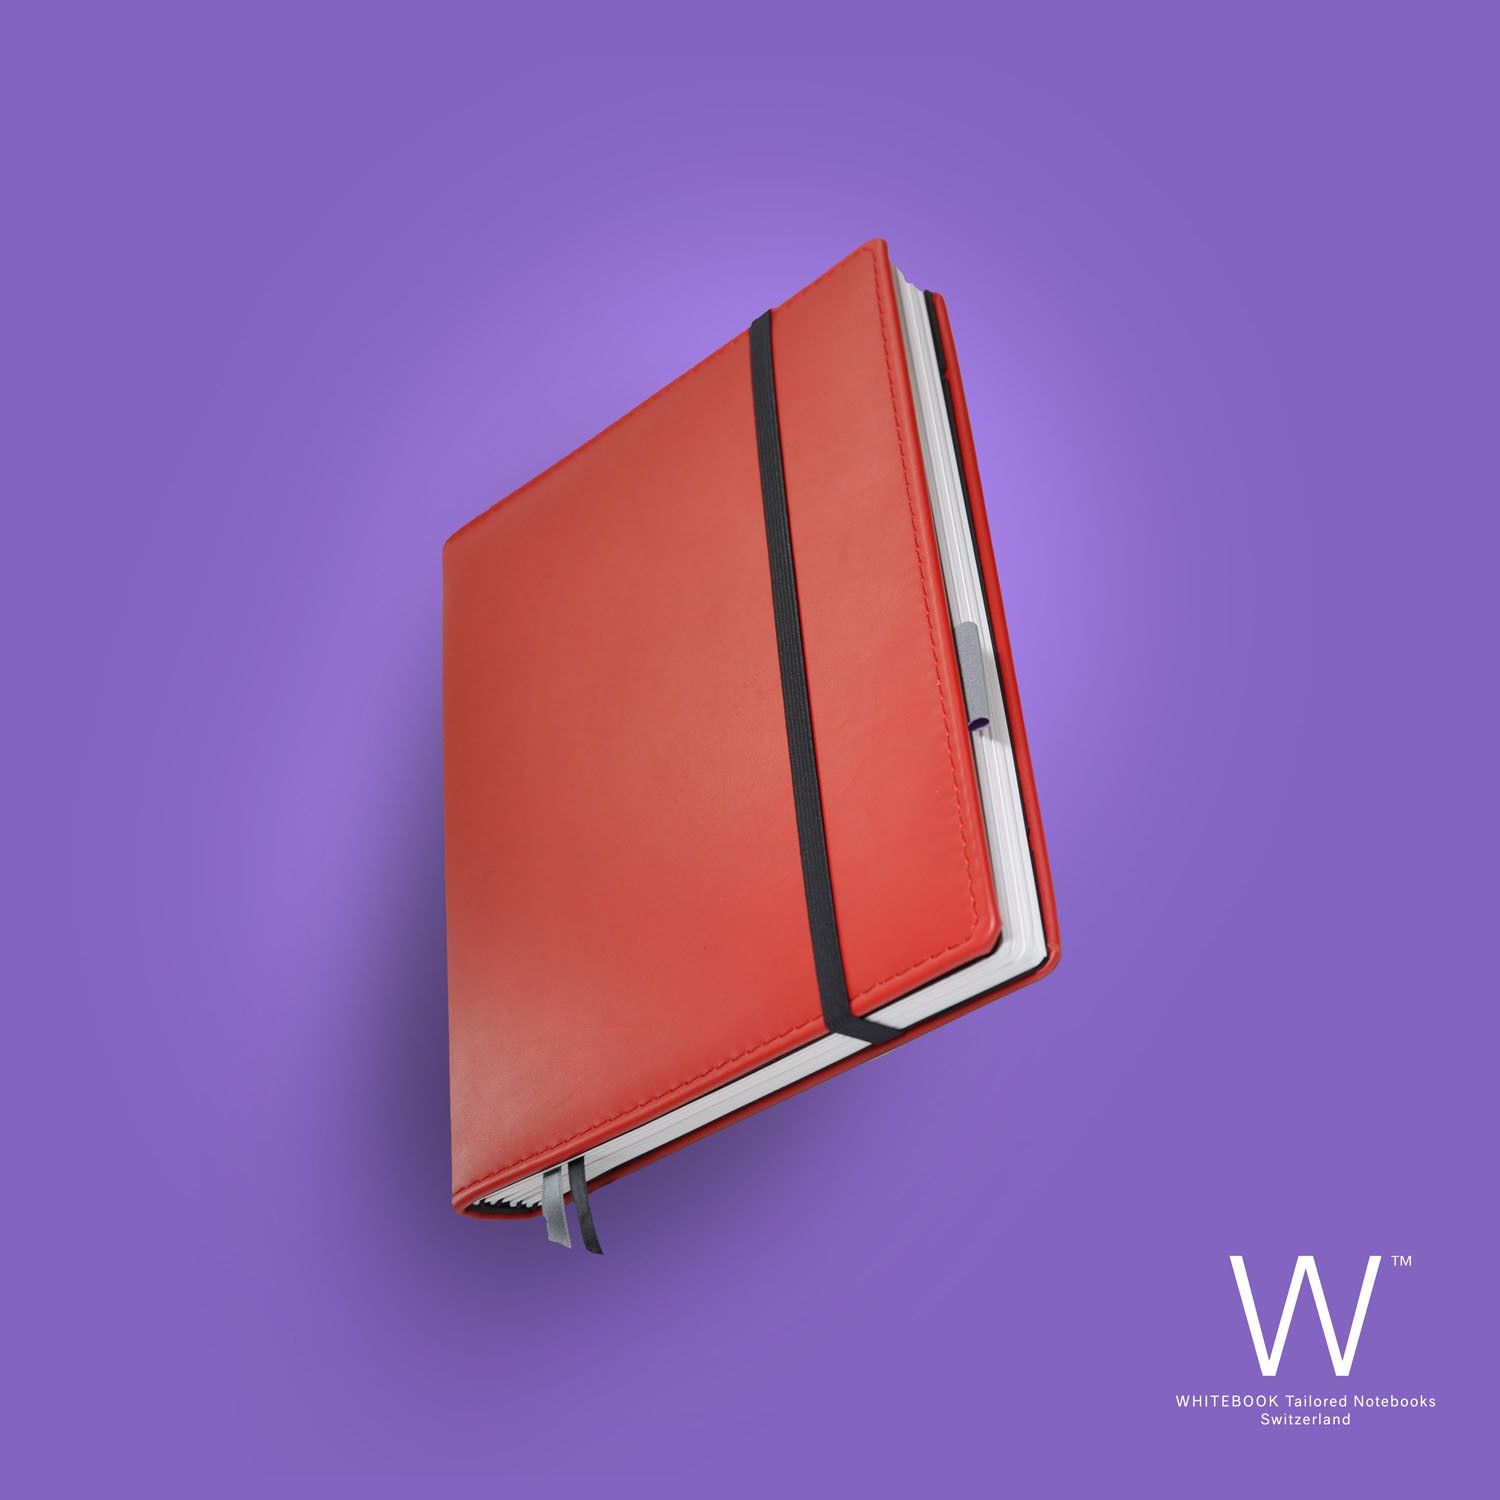 Whitebook Premium, P027w, Red